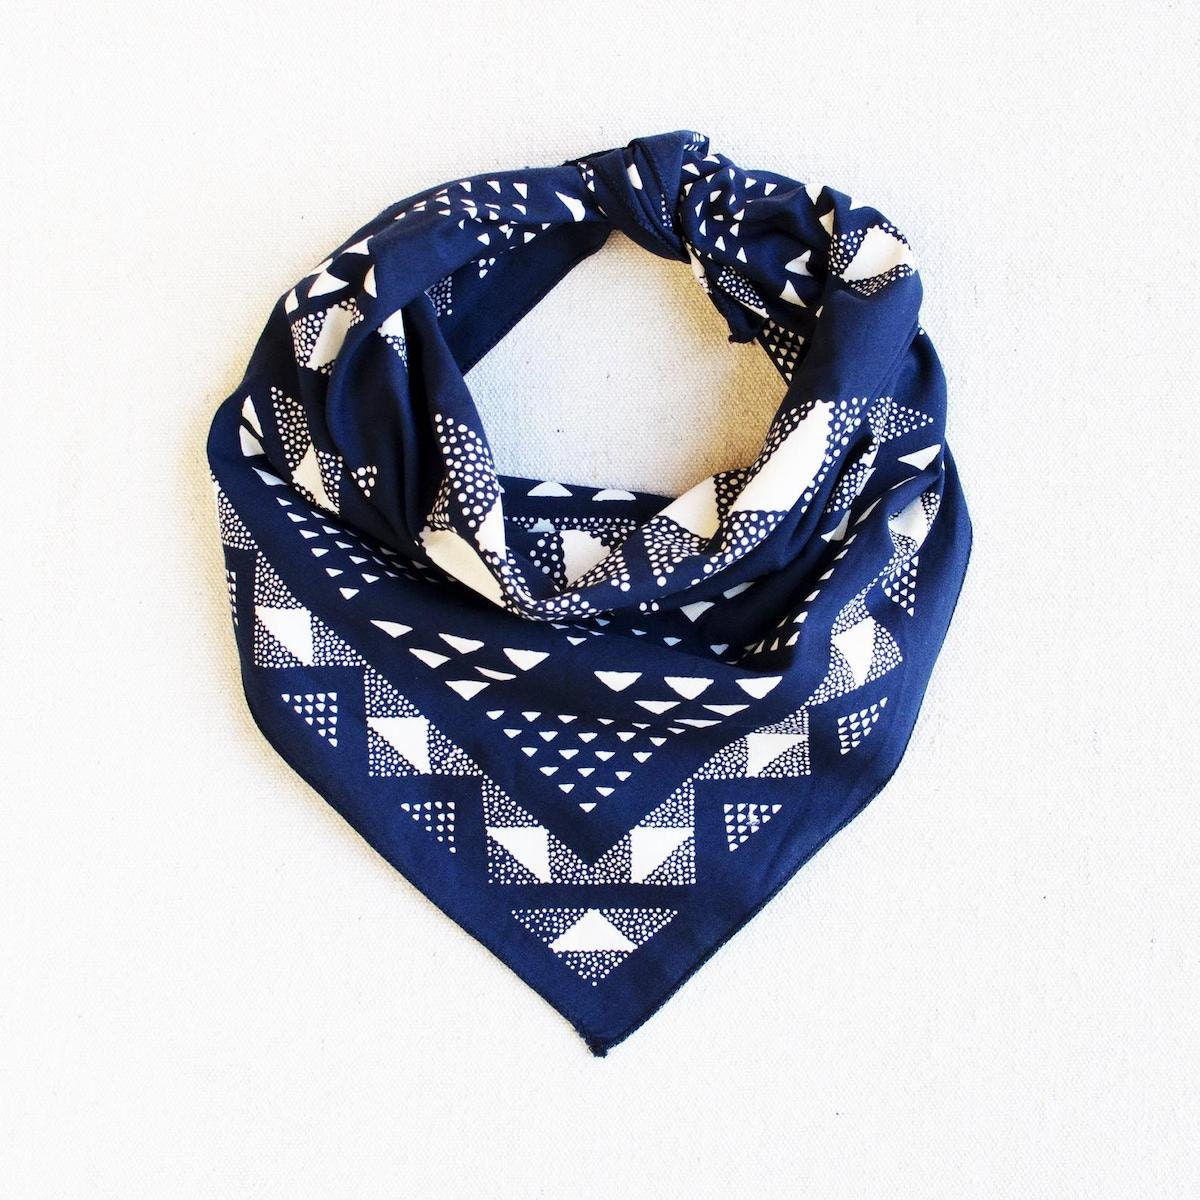 Hand-printed bandana from Maryink and more of the best dad gifts on Etsy